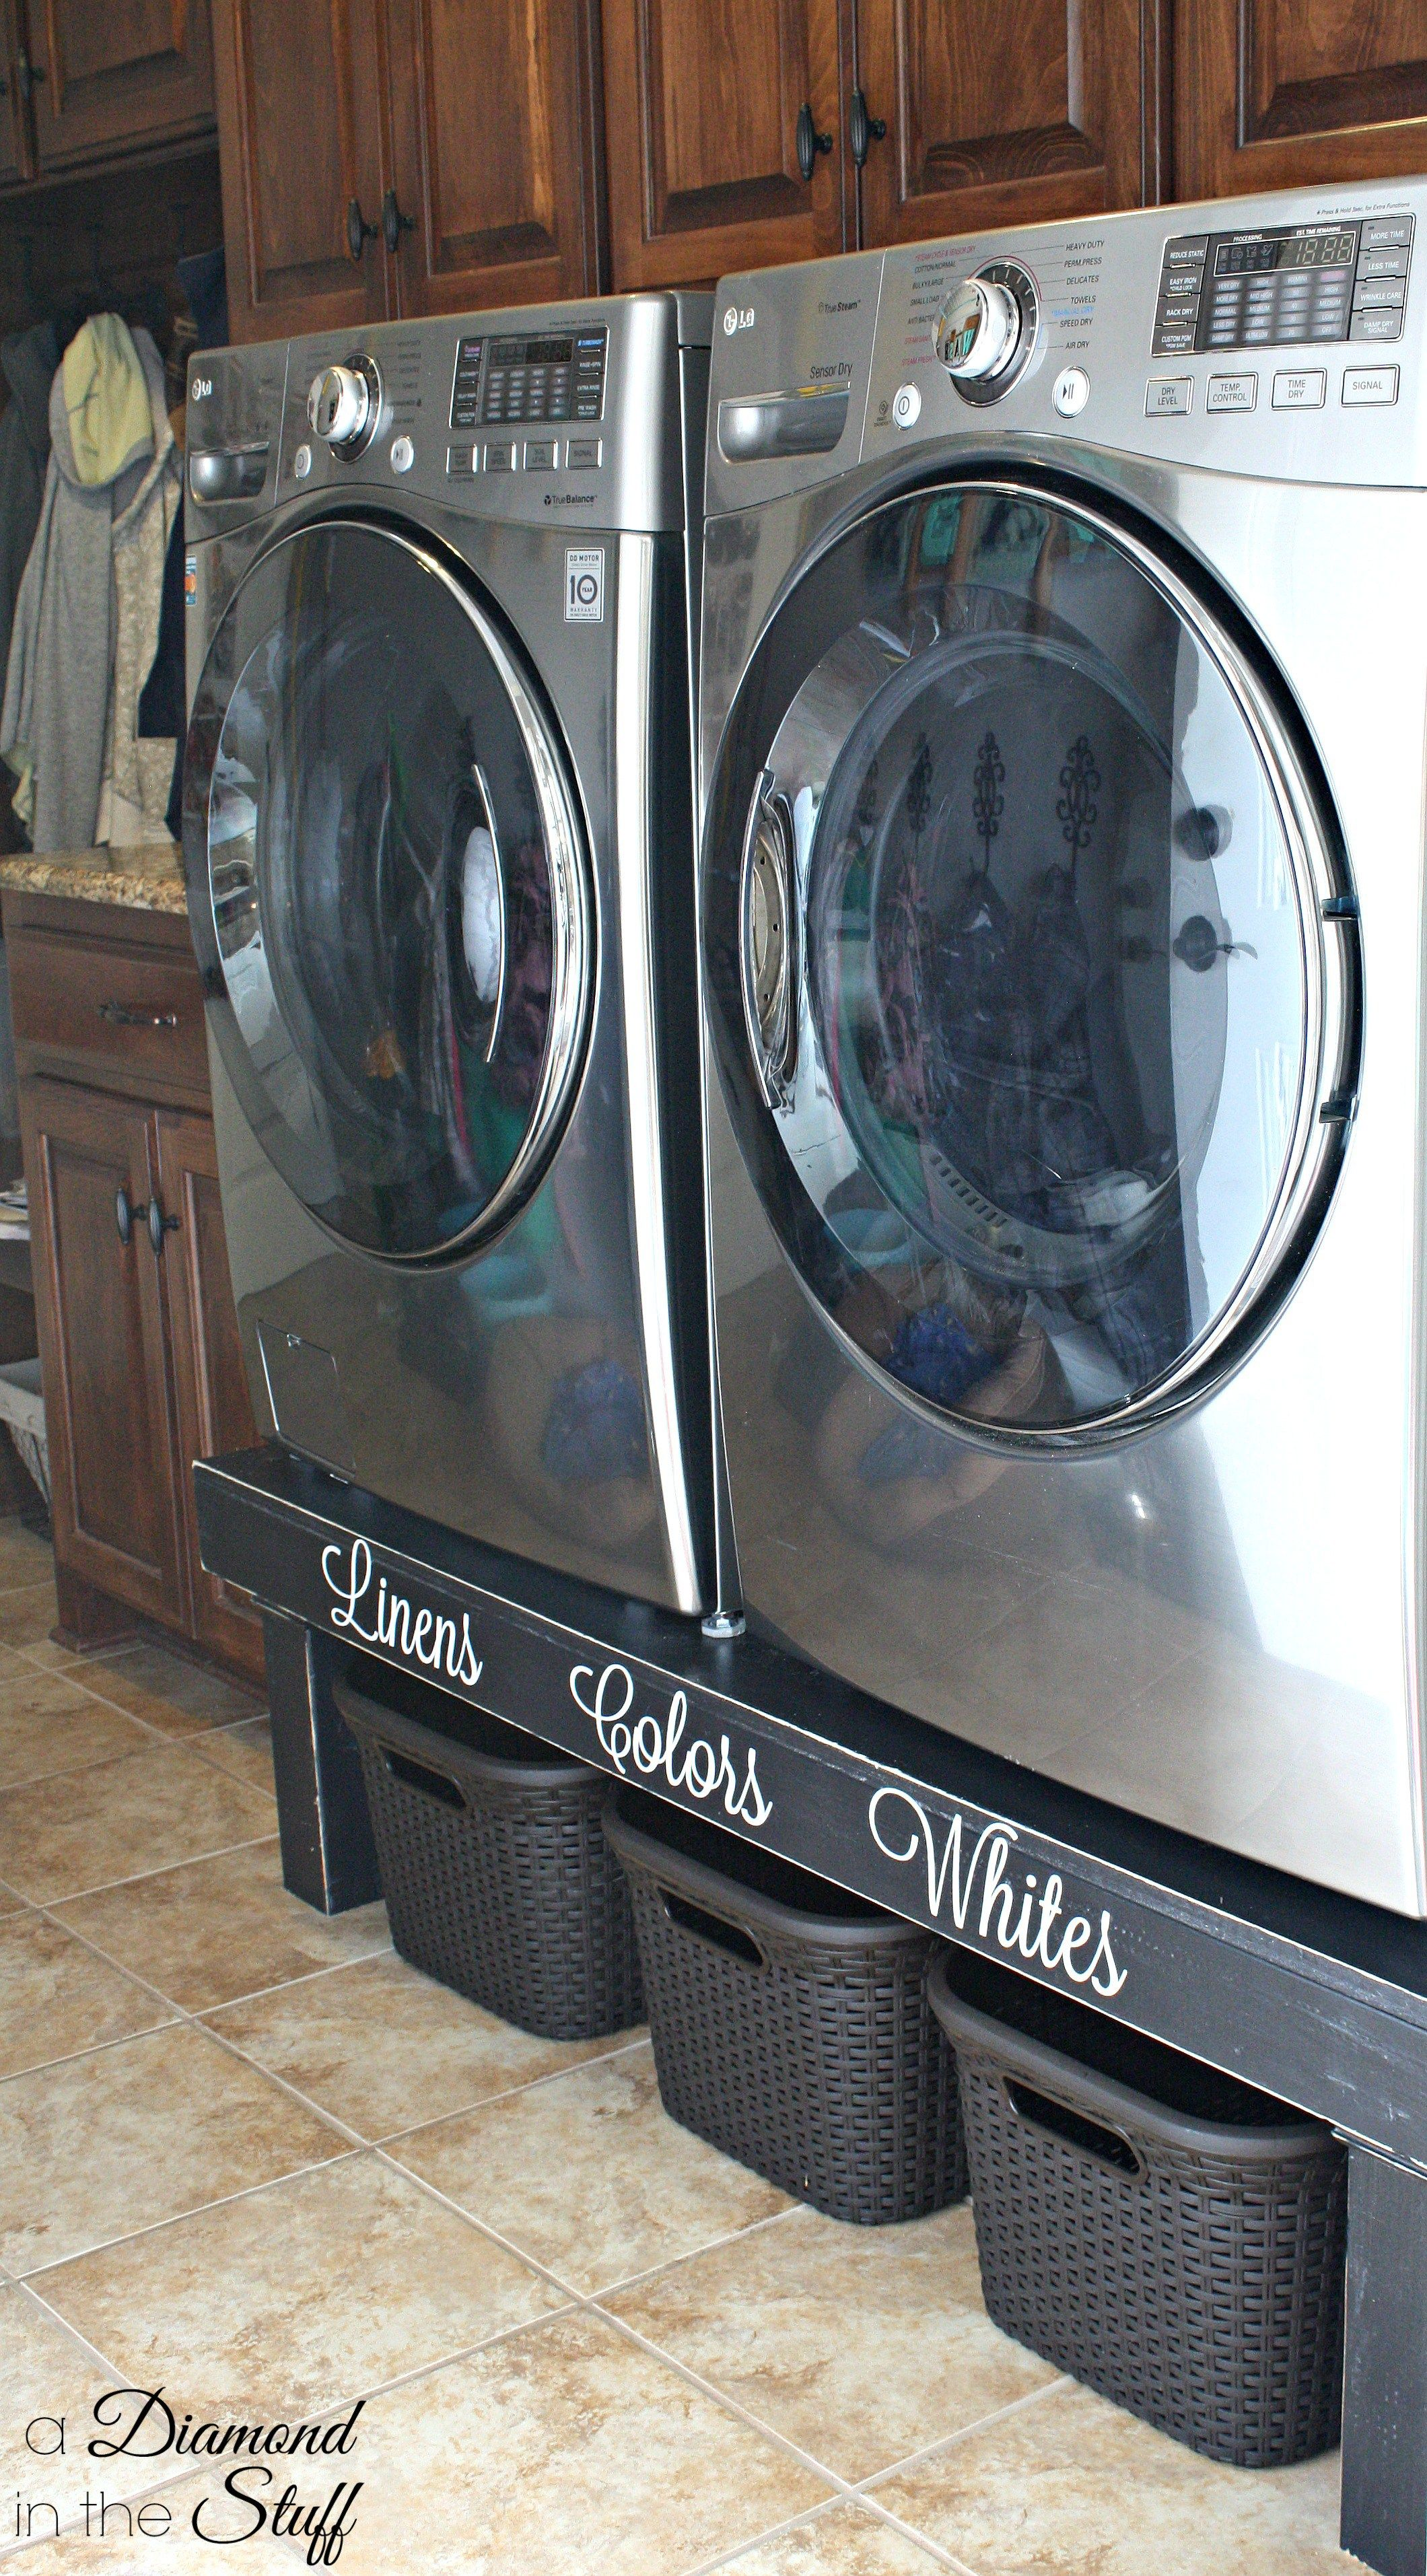 pedestal product click appliances dryers chrome item whirlpool shadow change to laundry cu dryer ft electric duet image